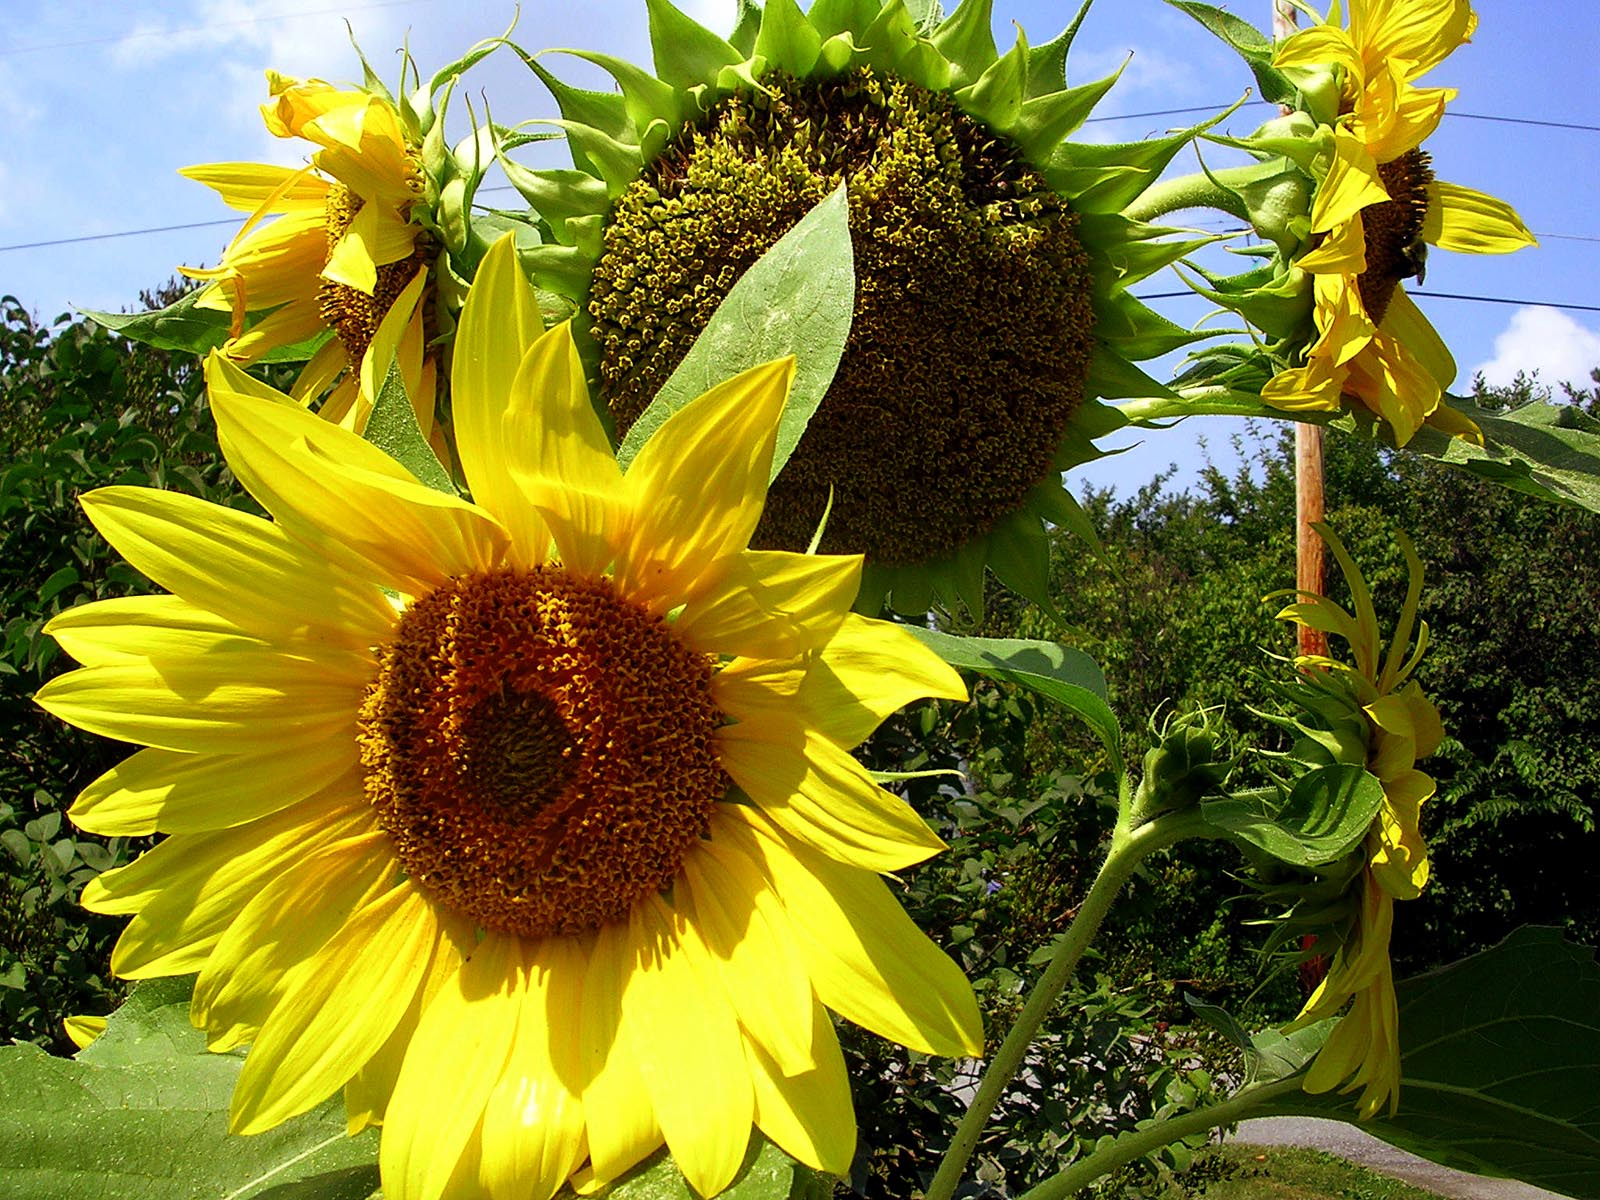 How to grow Sunflowers | Growing Sunflowers from seeds | Sunflower care